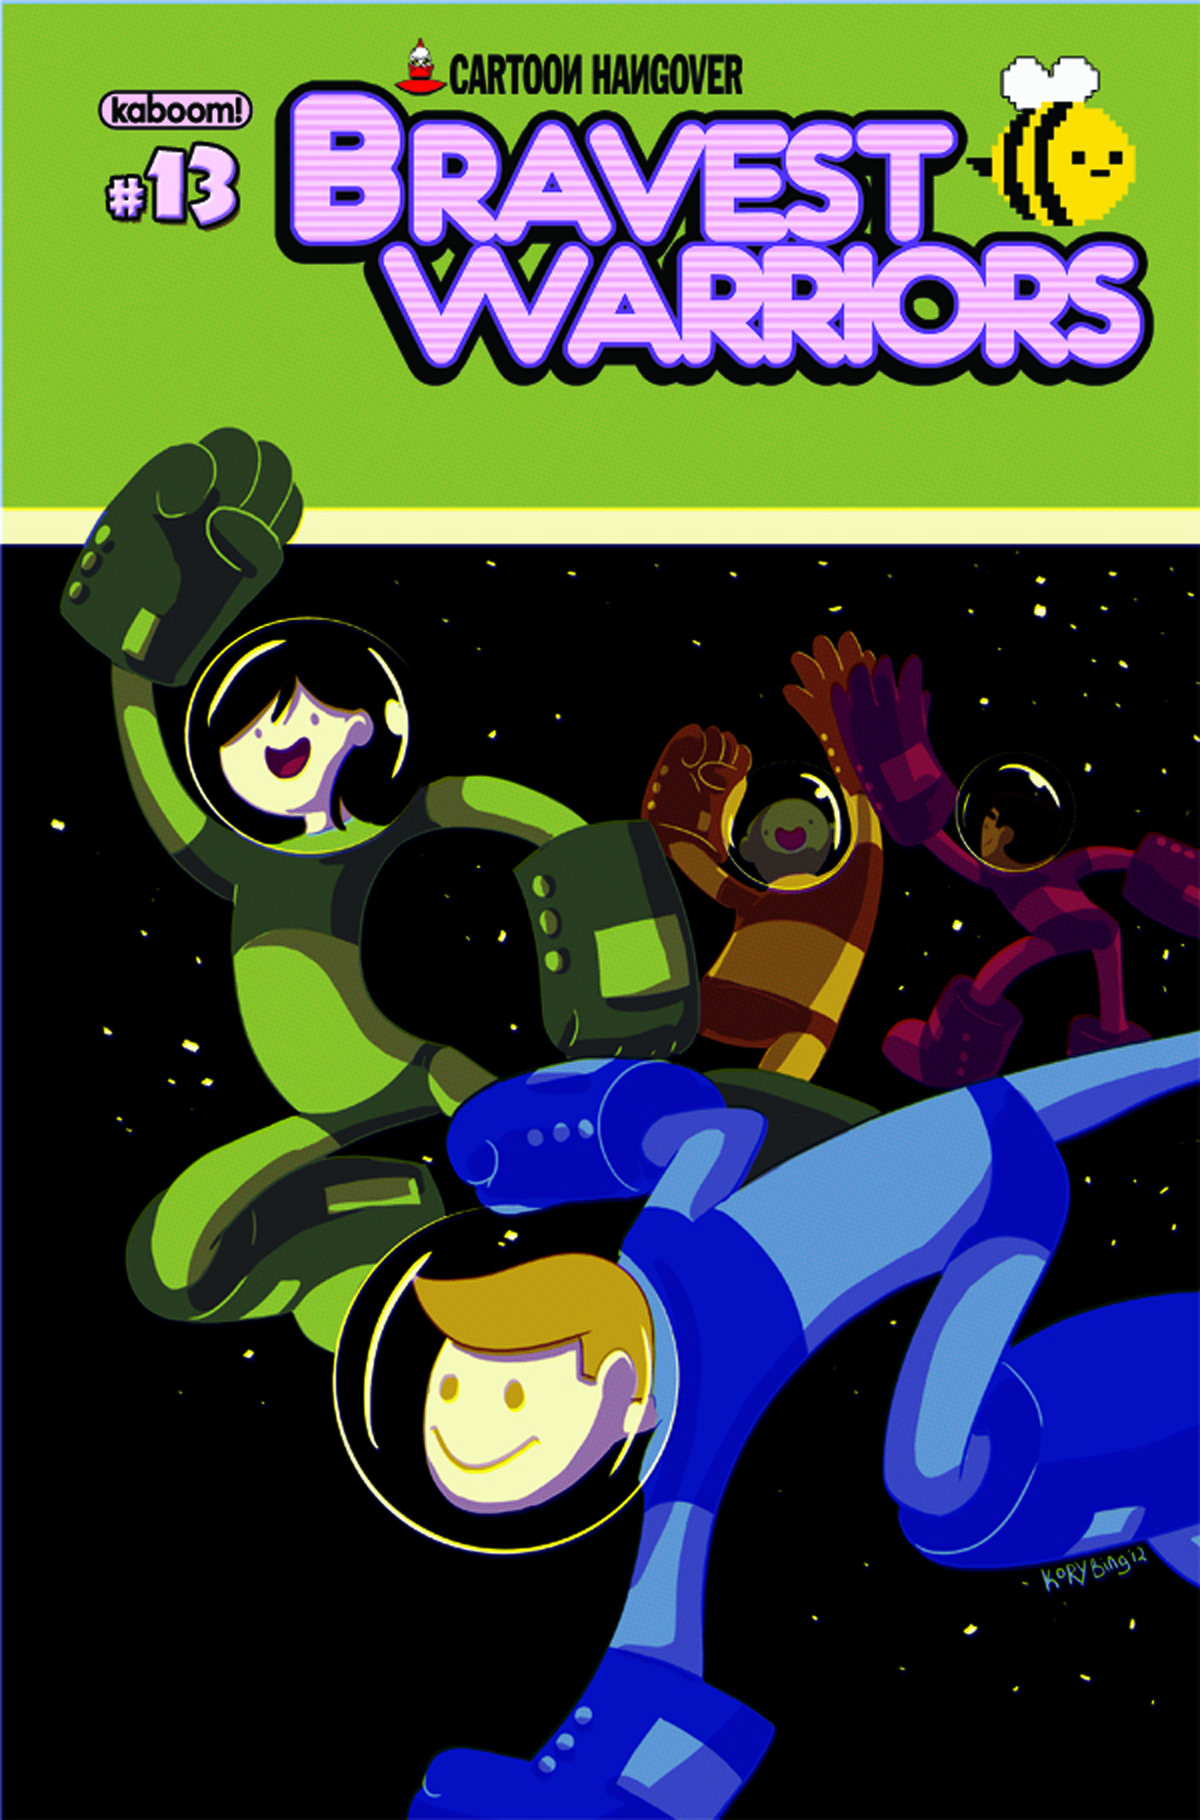 BRAVEST WARRIORS #13 MAIN CVRS